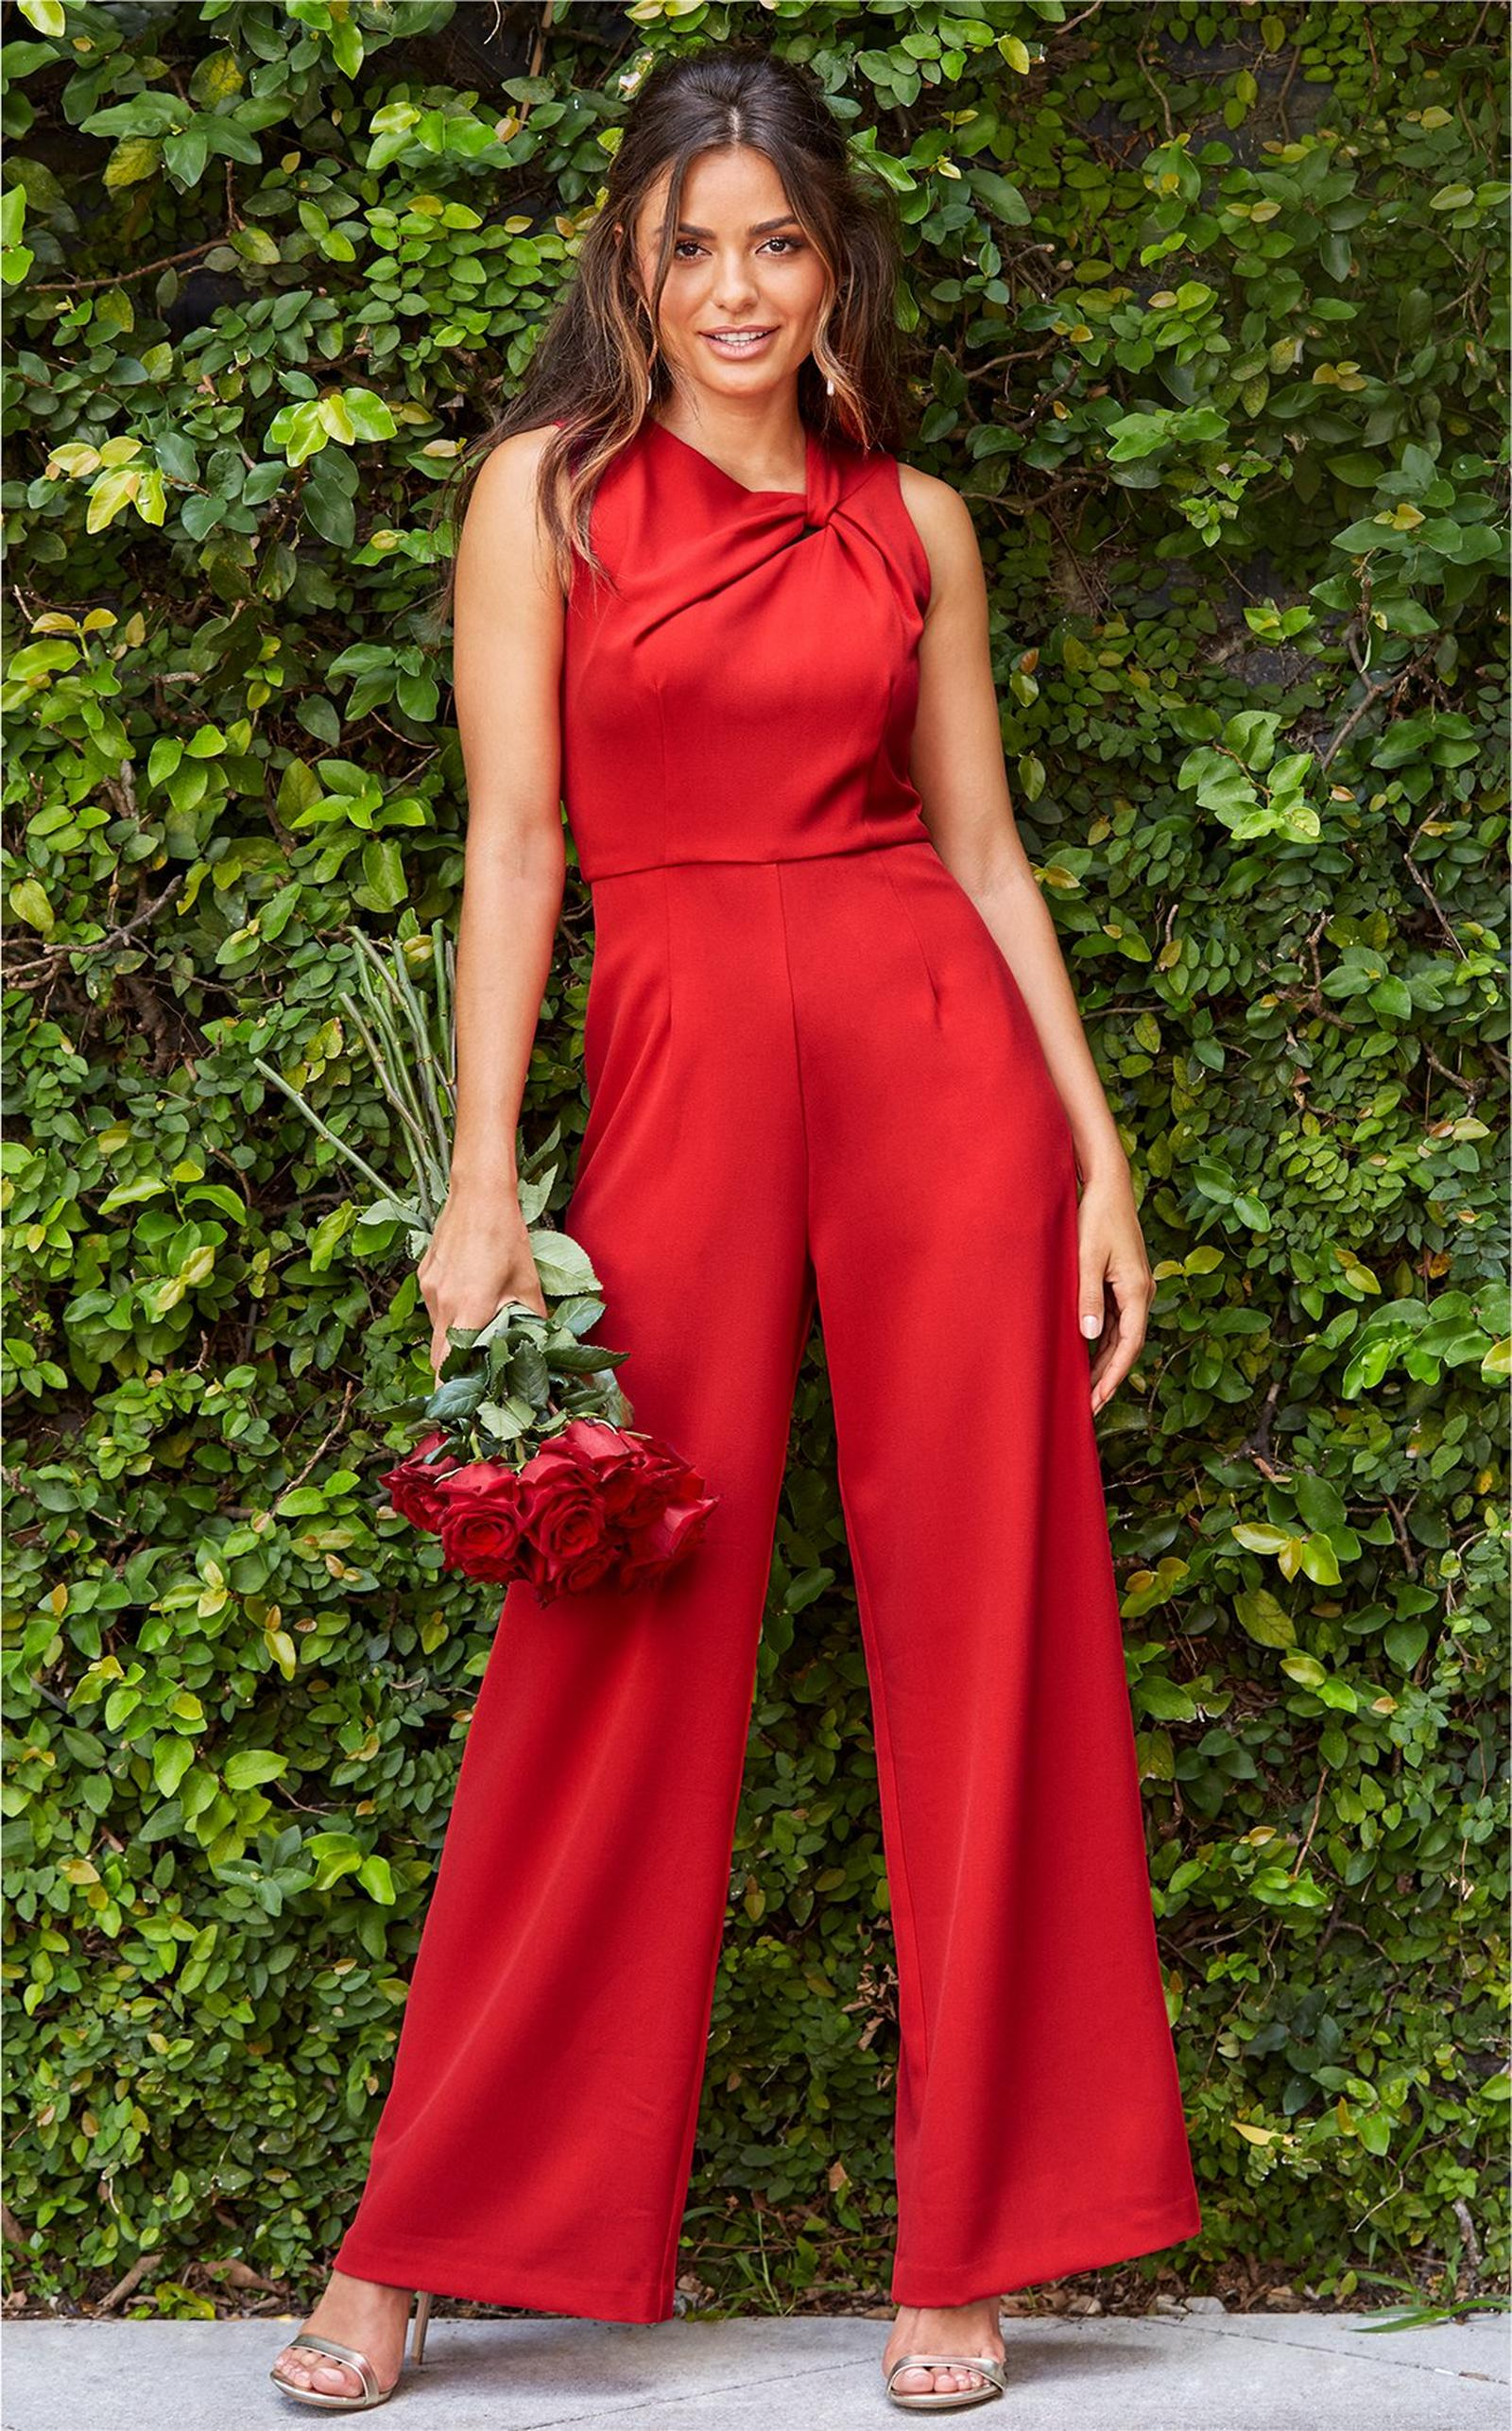 model wearing a red twisted jumpsuit while holding a bouquet of roses.